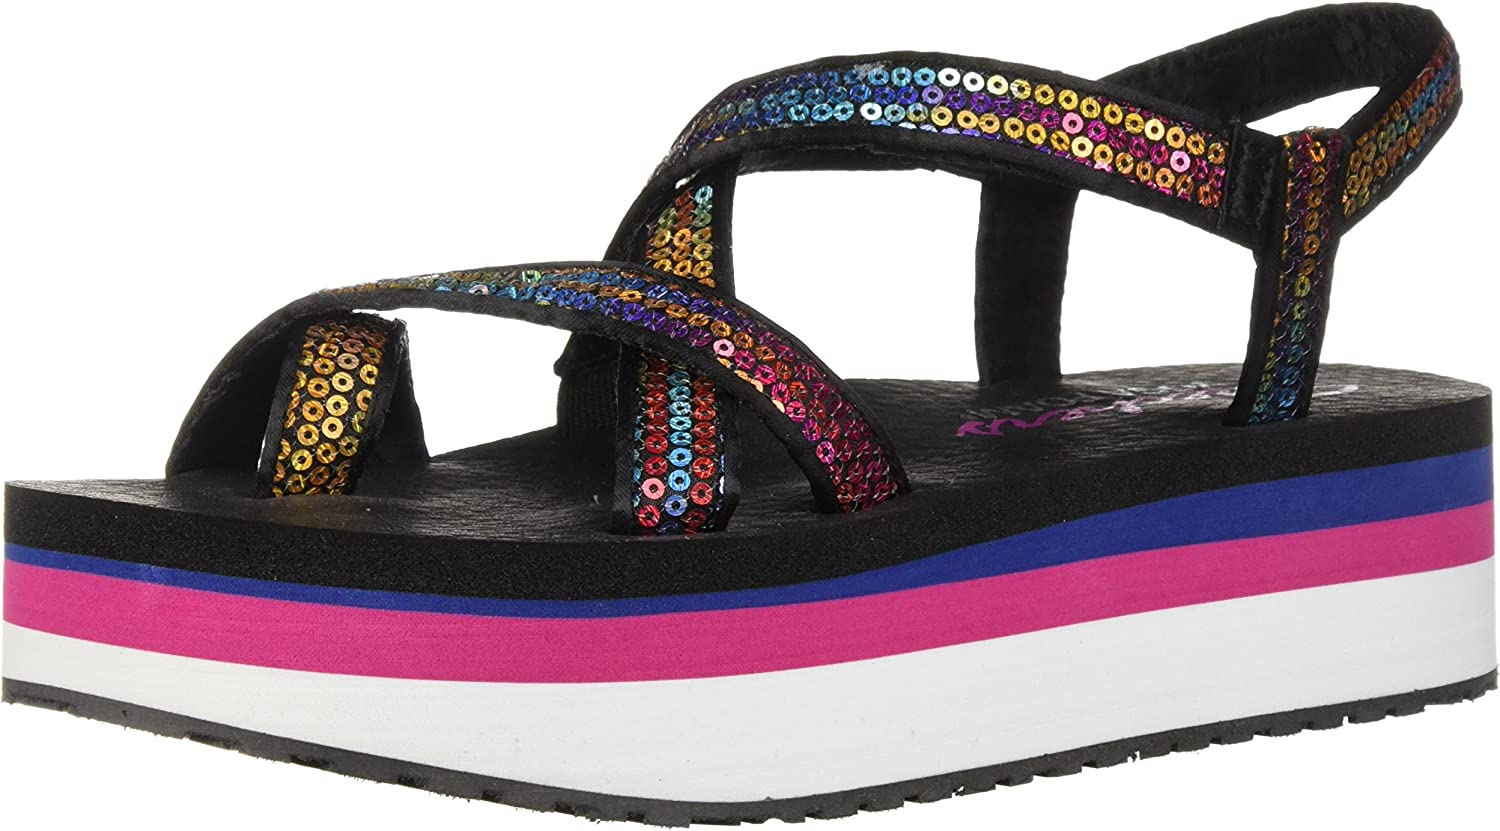 Skechers Womens Whip It - Fest - Sequined Toe-Loop Platform Sandal